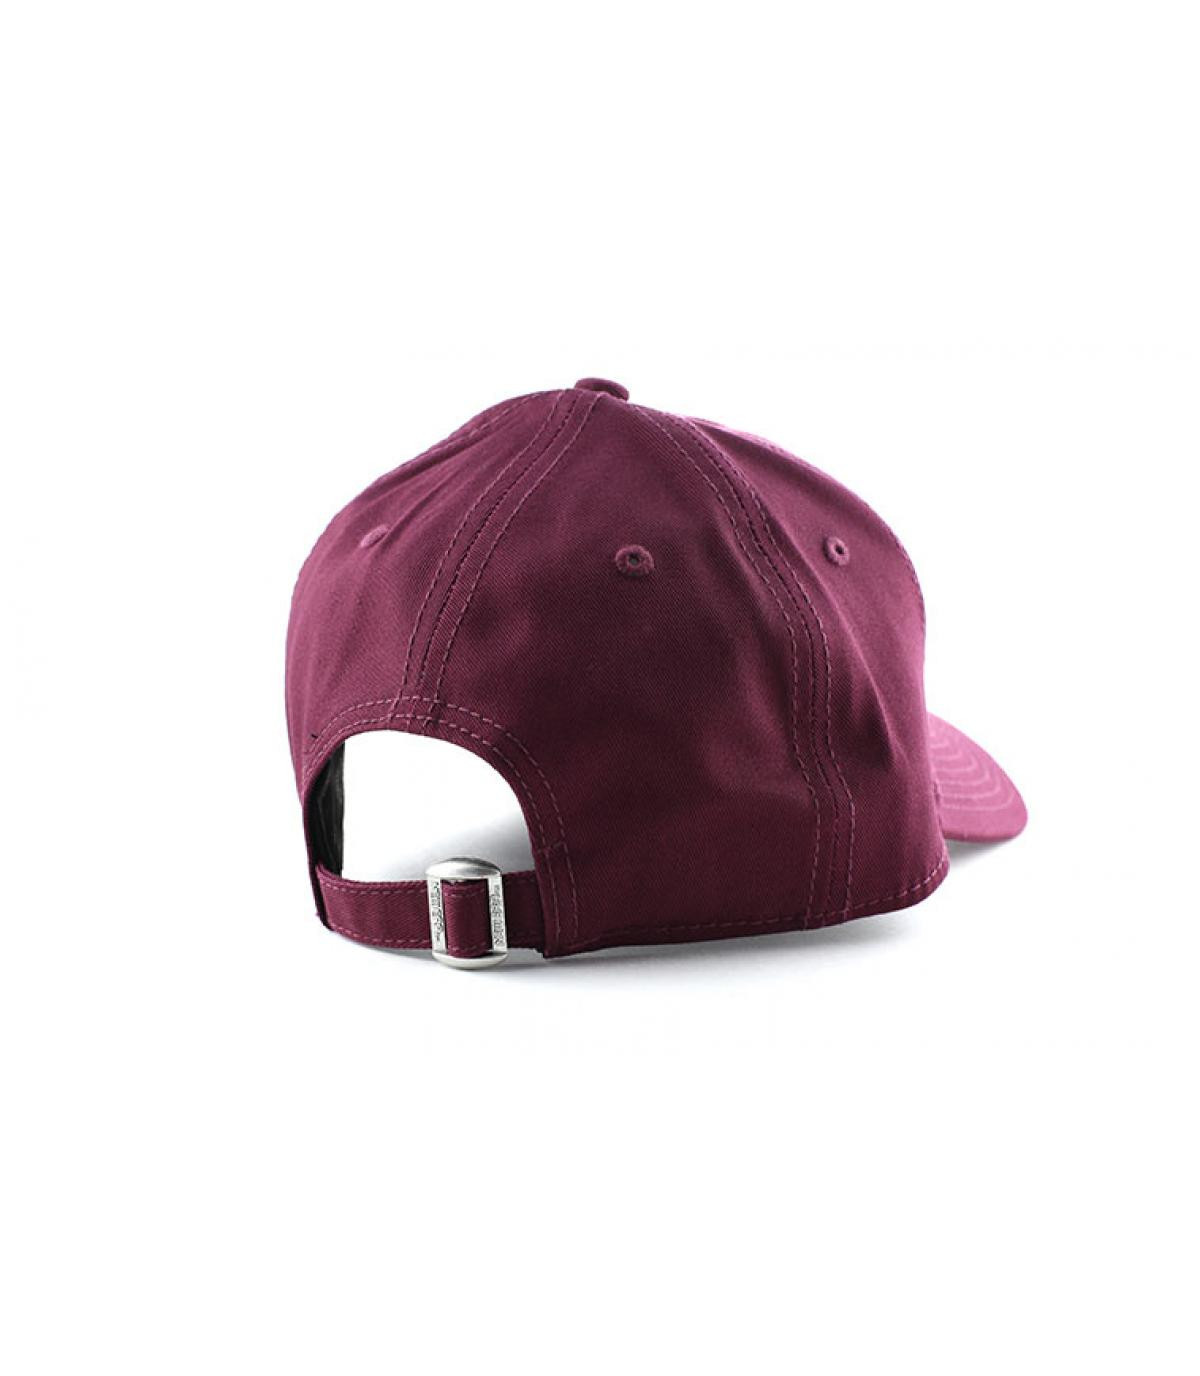 Details League essential Ny maroon - afbeeling 5